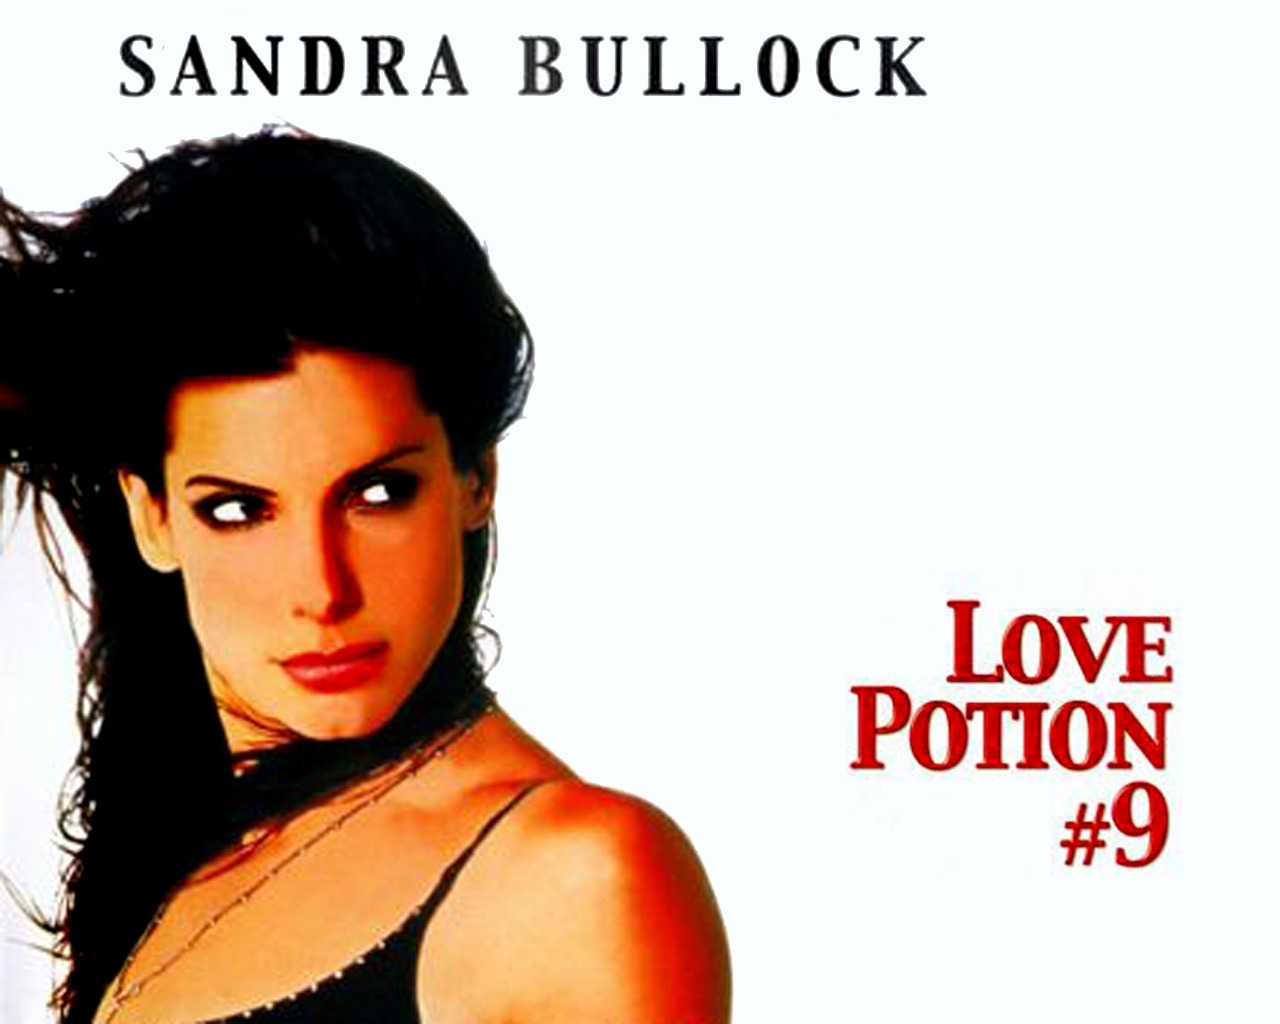 "Love Potion Number 9 (1992) was a romantic comedy starring Sandra Bullock. The actual tagline of this movie was: ""Imagine if sex appeal came in a bottle!"" No question mark at the end of that tagline, that's an exclamation mark, implying the imperative. Imagine it! Imagine it, damn you! WHAT I DID FOR LOVE is a new improv comedy show at UCBeast (Avenue A & 3rd Street), every Friday at 7:30pm. Imagine going to this show, and then follow through on that imagination! Do it, damn you, do it! Make reservations here."